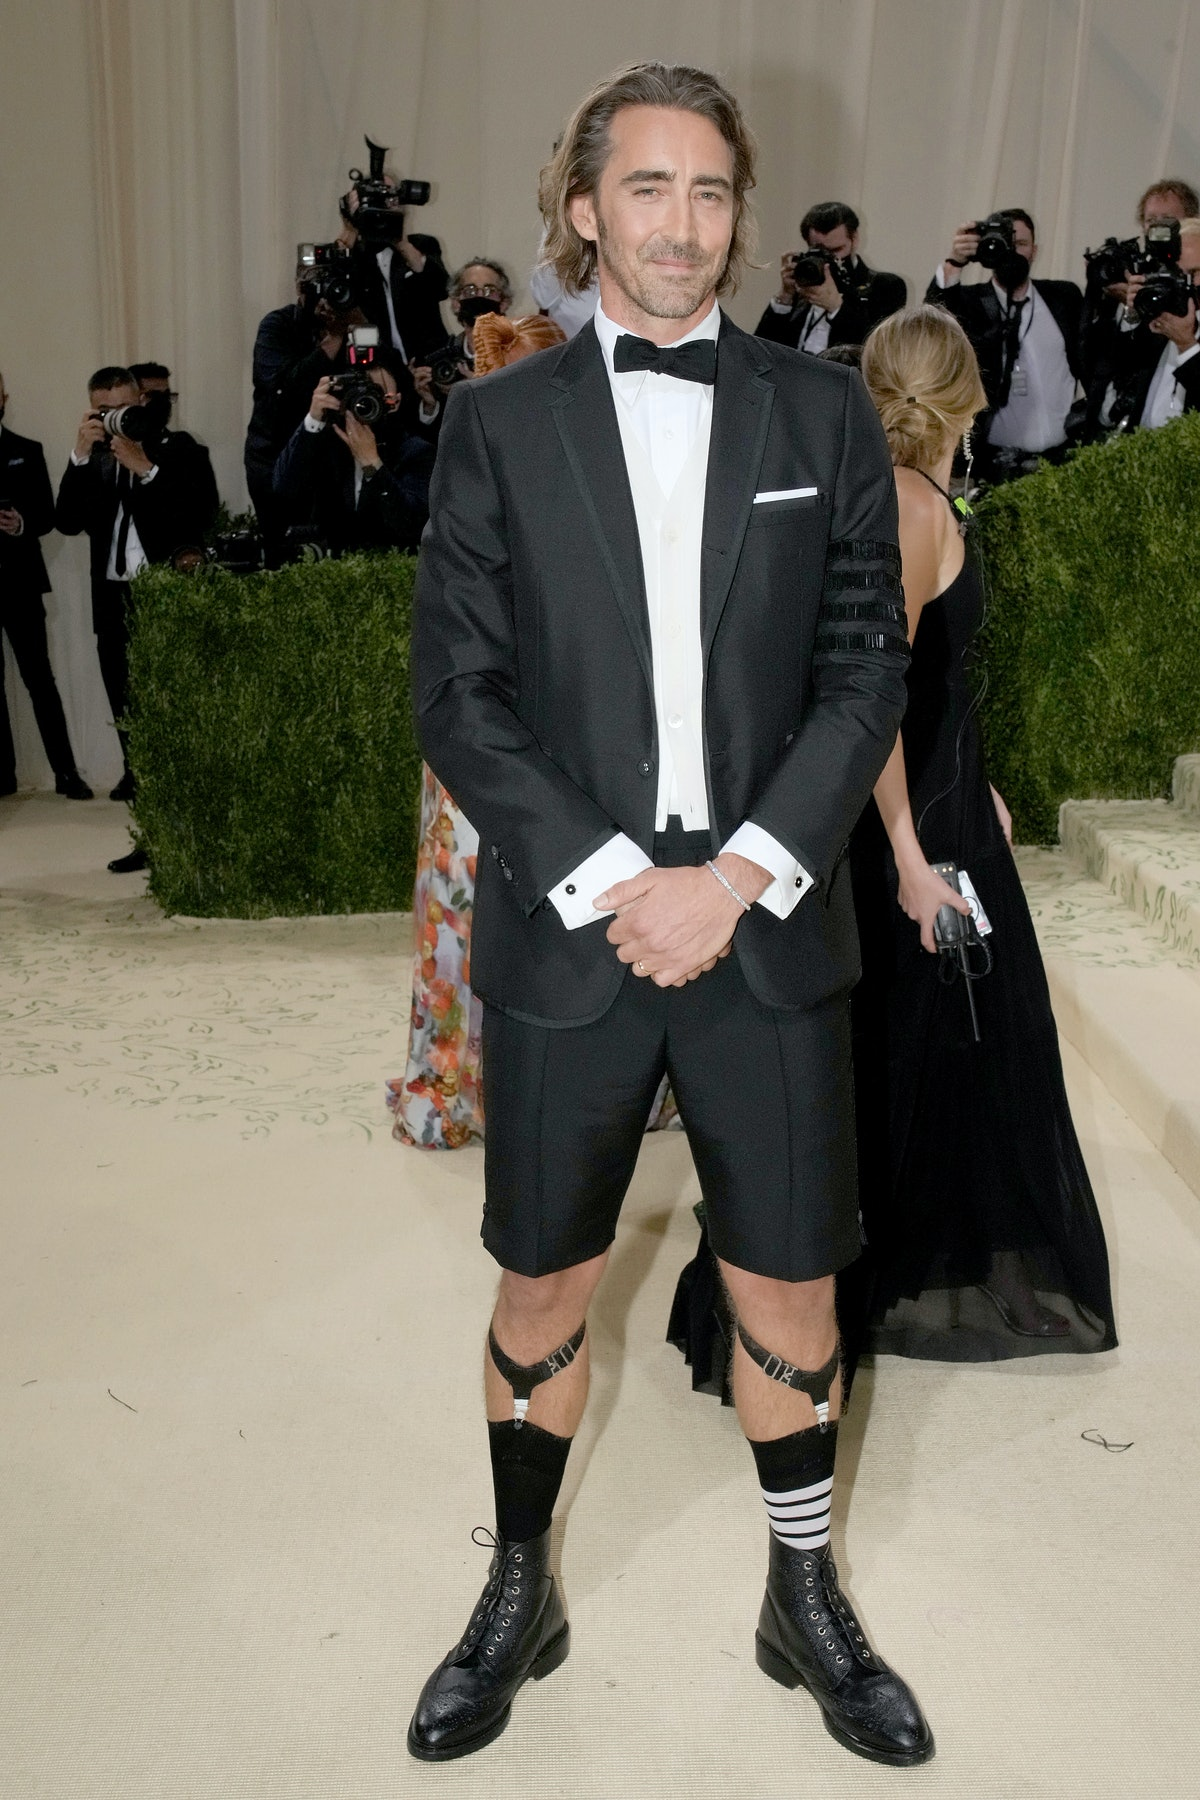 NEW YORK, NEW YORK - SEPTEMBER 13: Actor Lee Pace attends The 2021 Met Gala Celebrating In America: ...